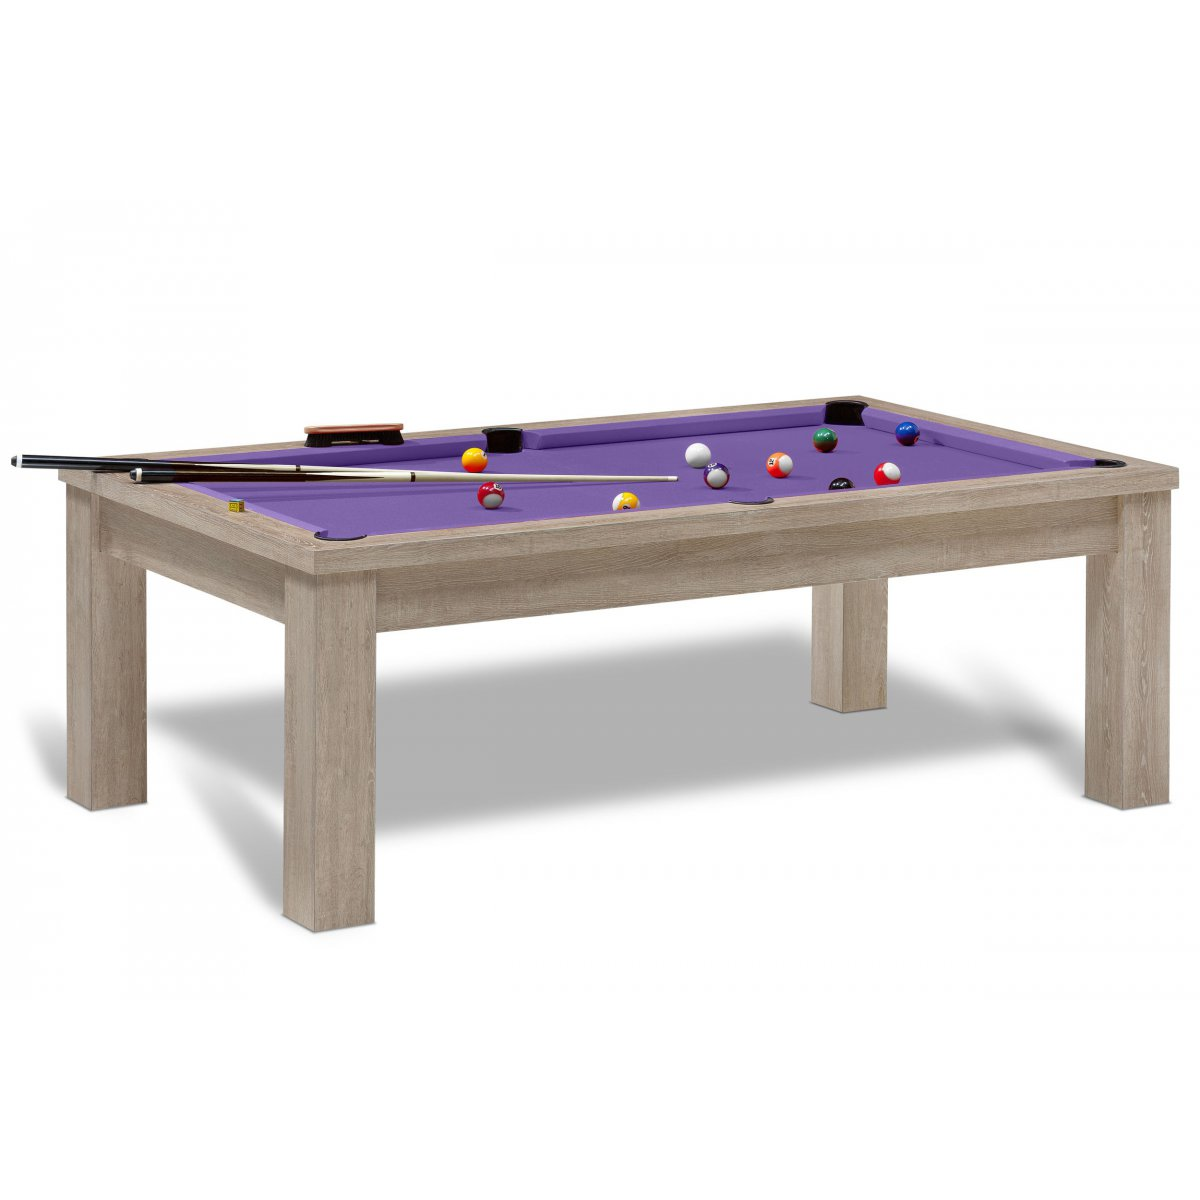 Billard am ricain billard table personnalisable jeux us - Billard transformable en table ...